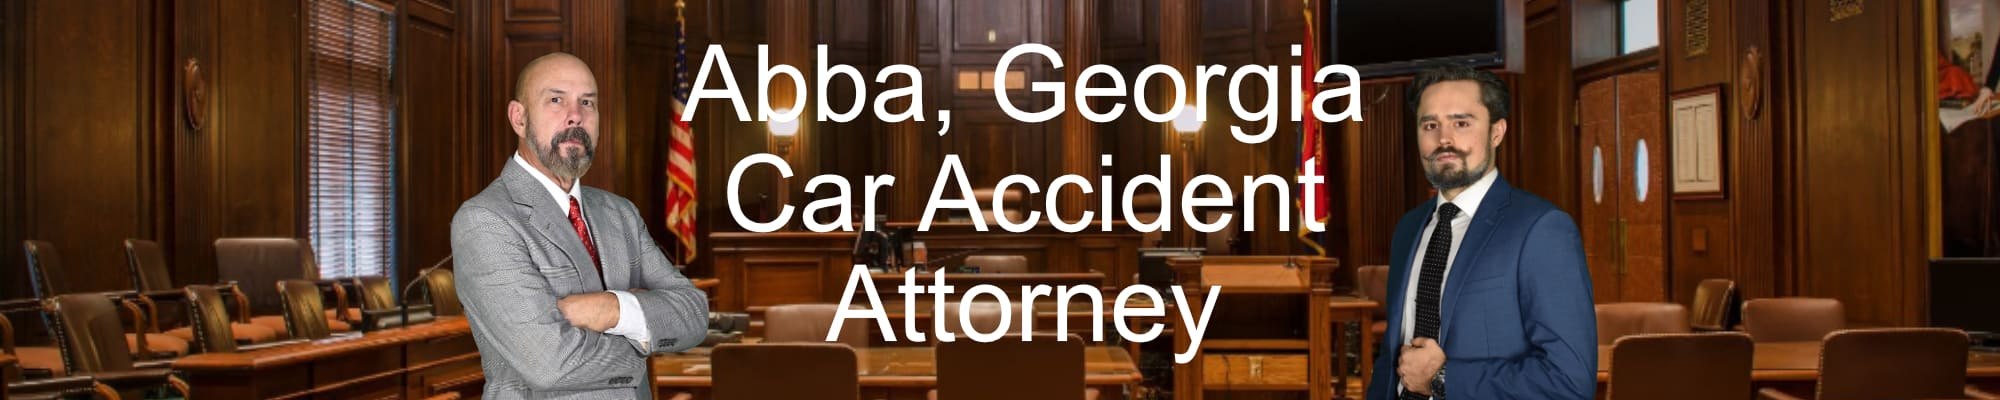 Abba-Georgia-Car-Accident-Attorney-Personal-Injury-Lawyer-Settlement-Merck-Law-LLC